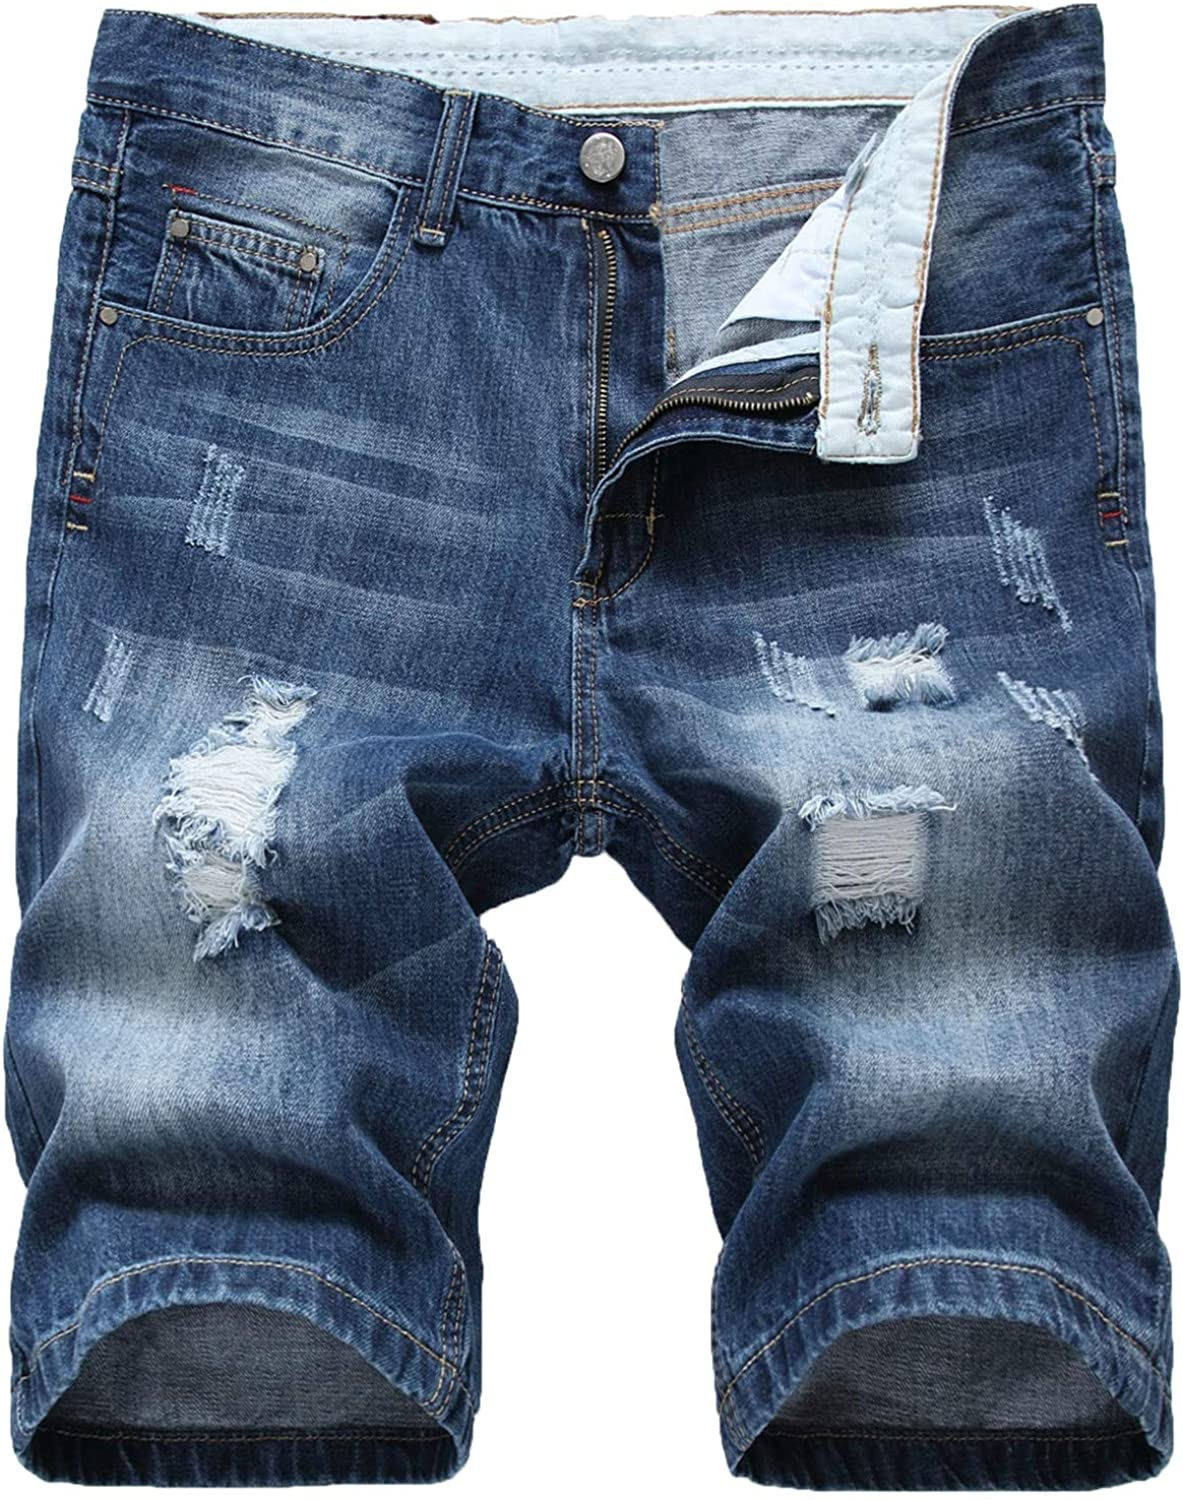 Andongnywell Men's Summer Casual Denim Shorts Distressed Stretchy Jeans Shorts Ripped Straight Short Pants